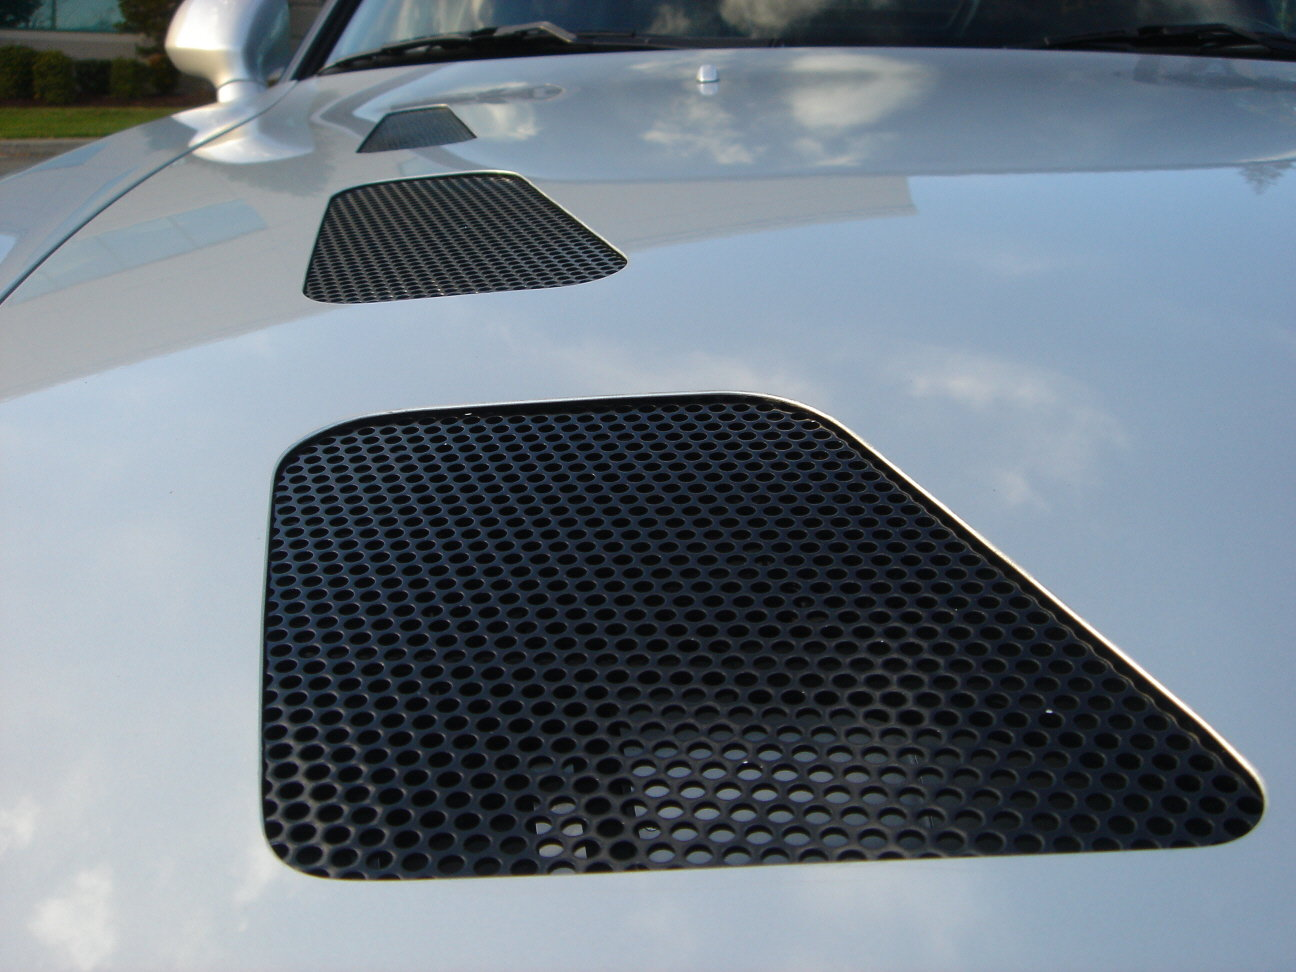 Diy Vented Aluminum Hood S2ki Honda S2000 Forums